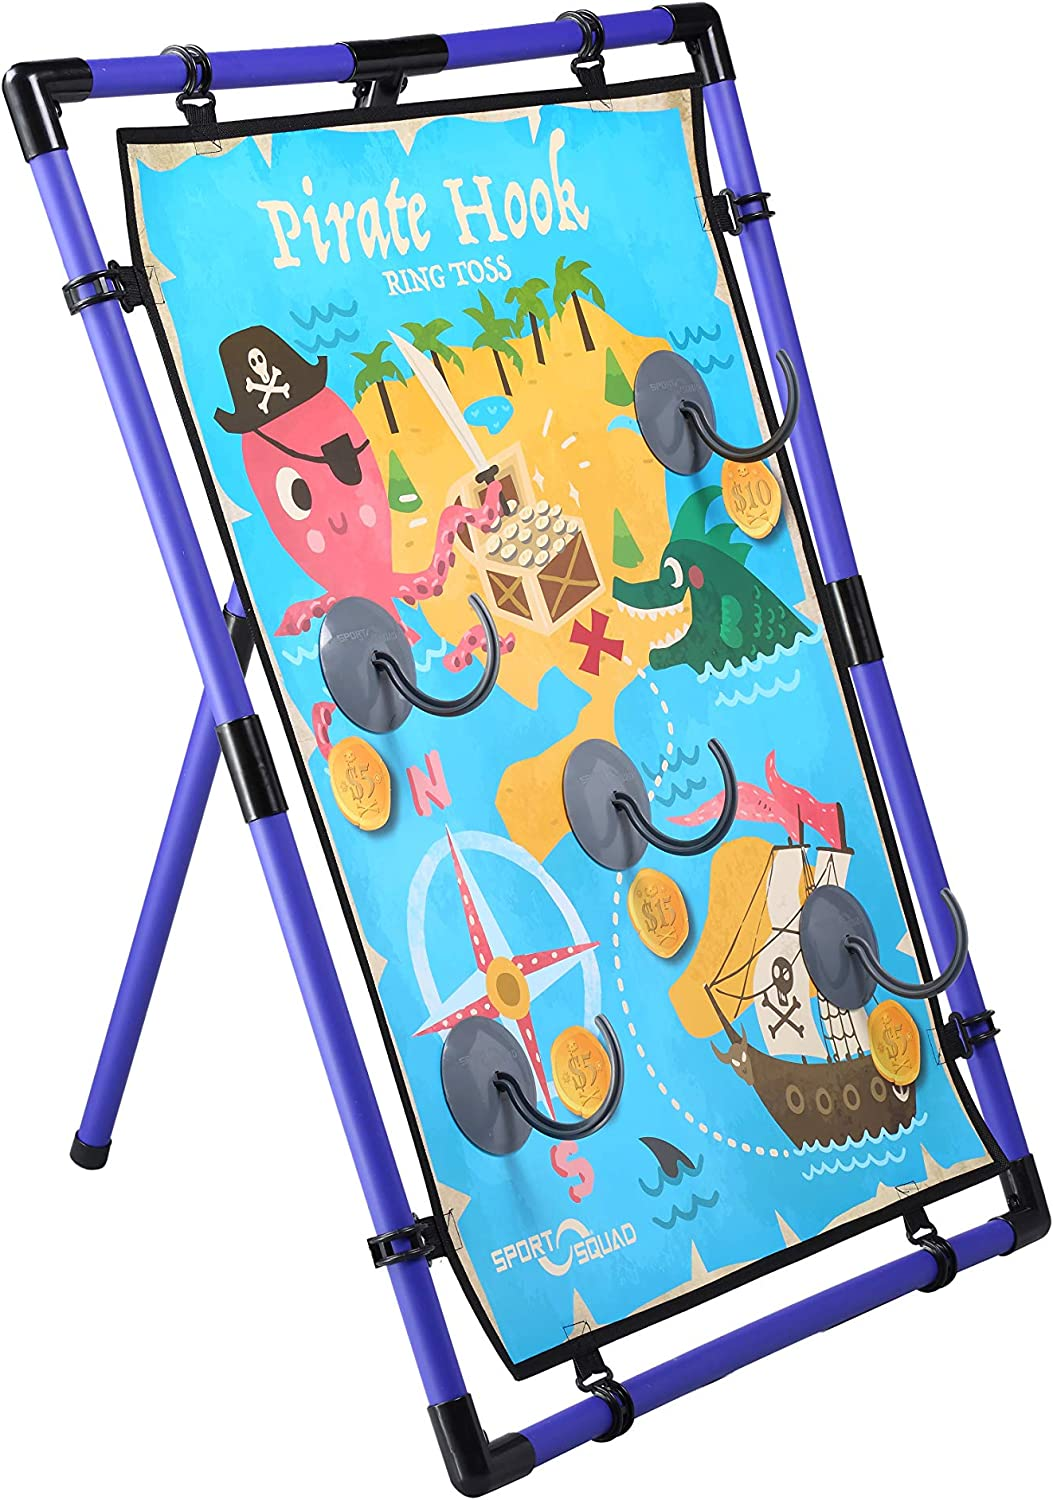 Sport Squad Pirate Hook Ring G Ranking TOP3 Indoor Columbus Mall Toss Outdoor -